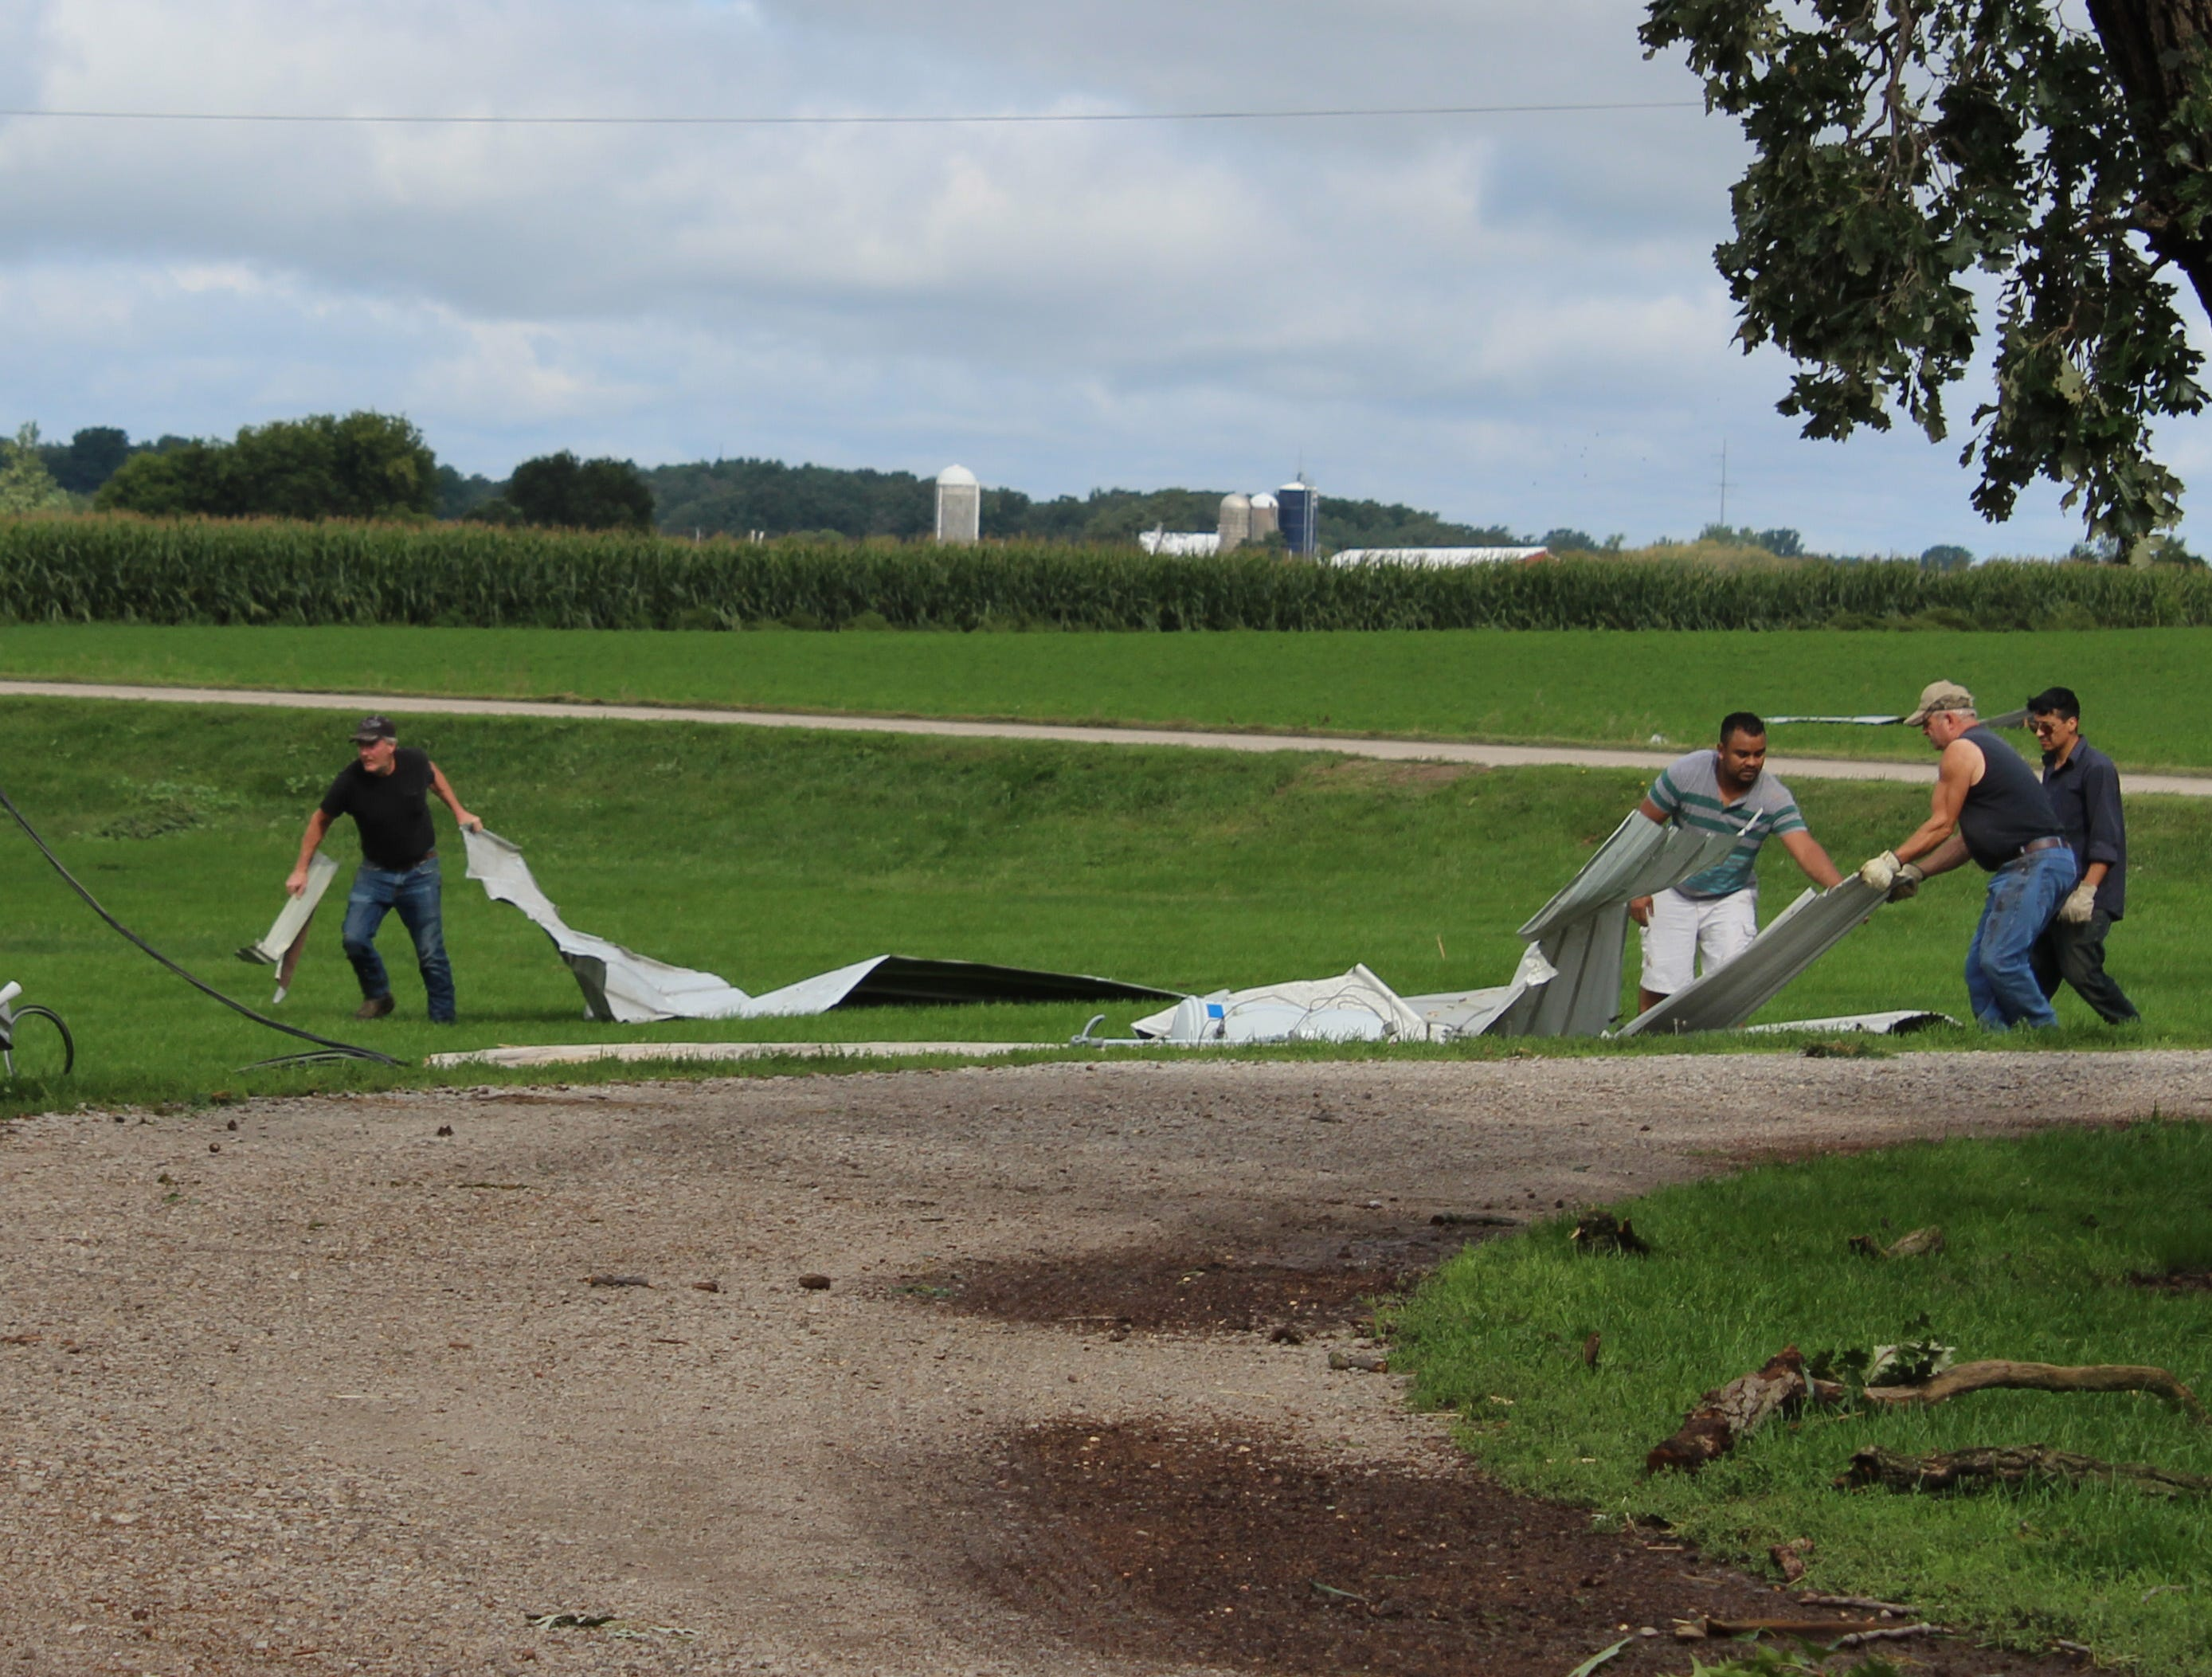 Volunteers collect sheet metal that was strewn around the farm by a tornado.